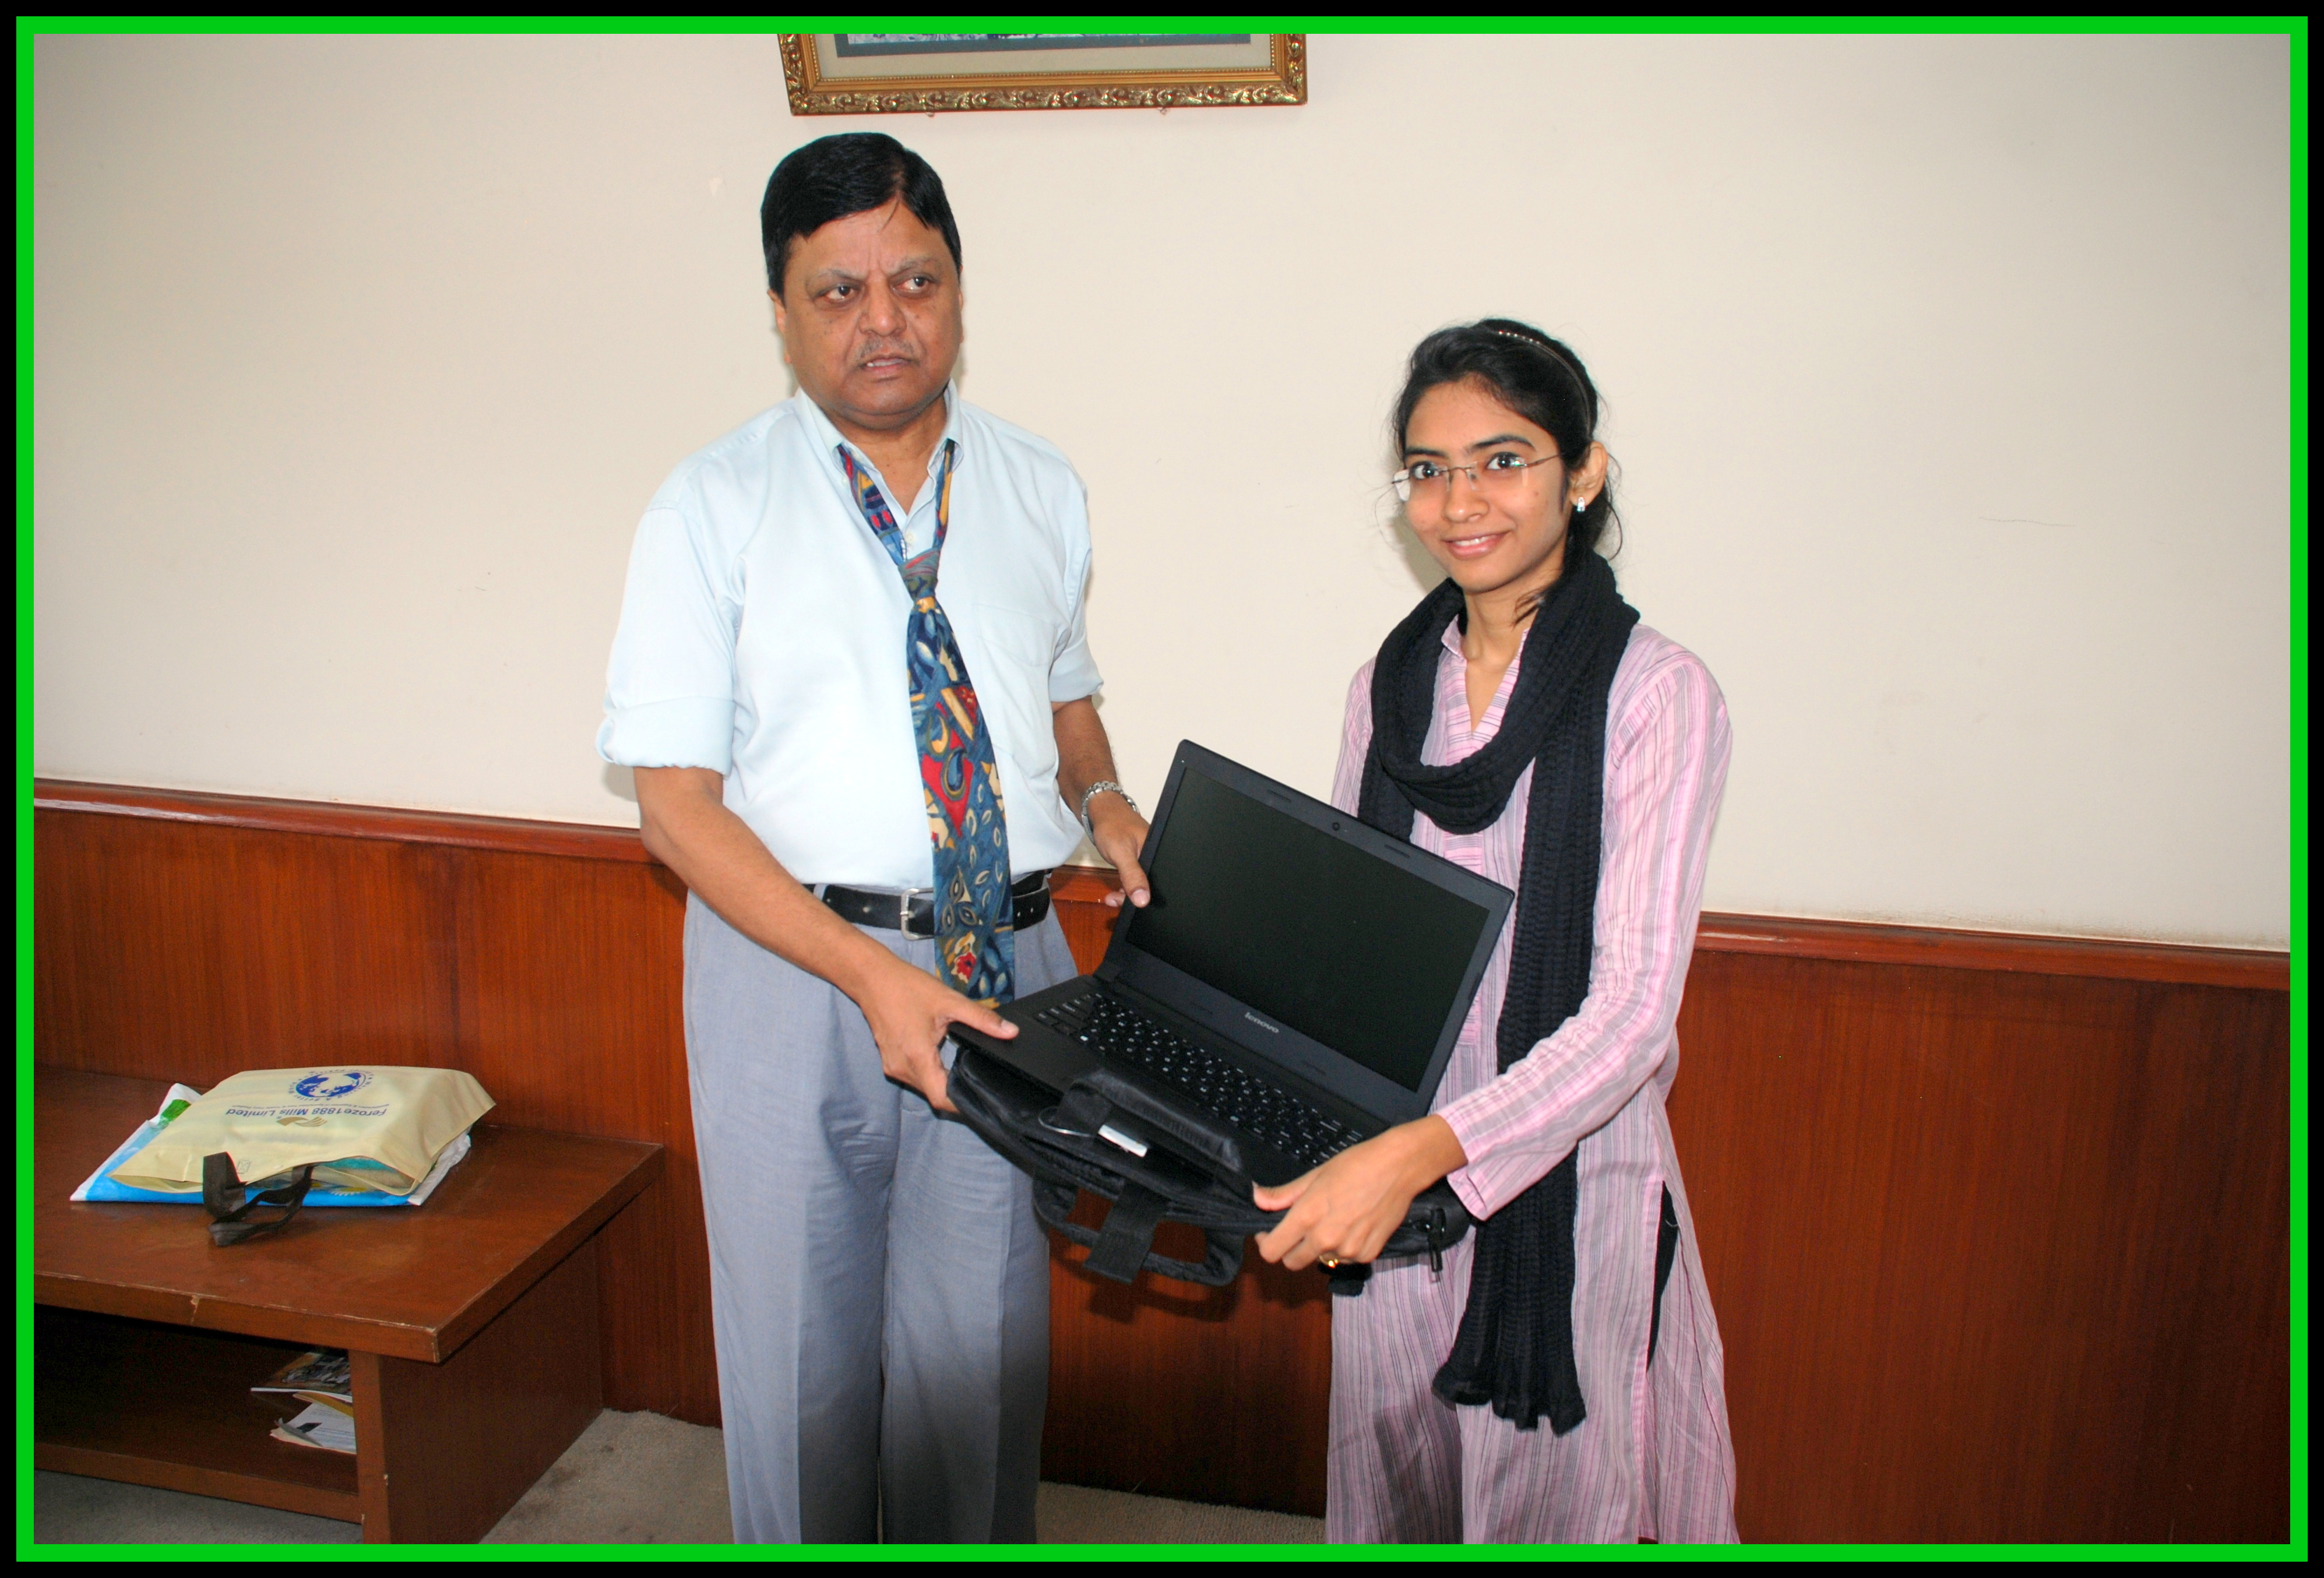 Mahnoor receiving her laptop from VC NED University